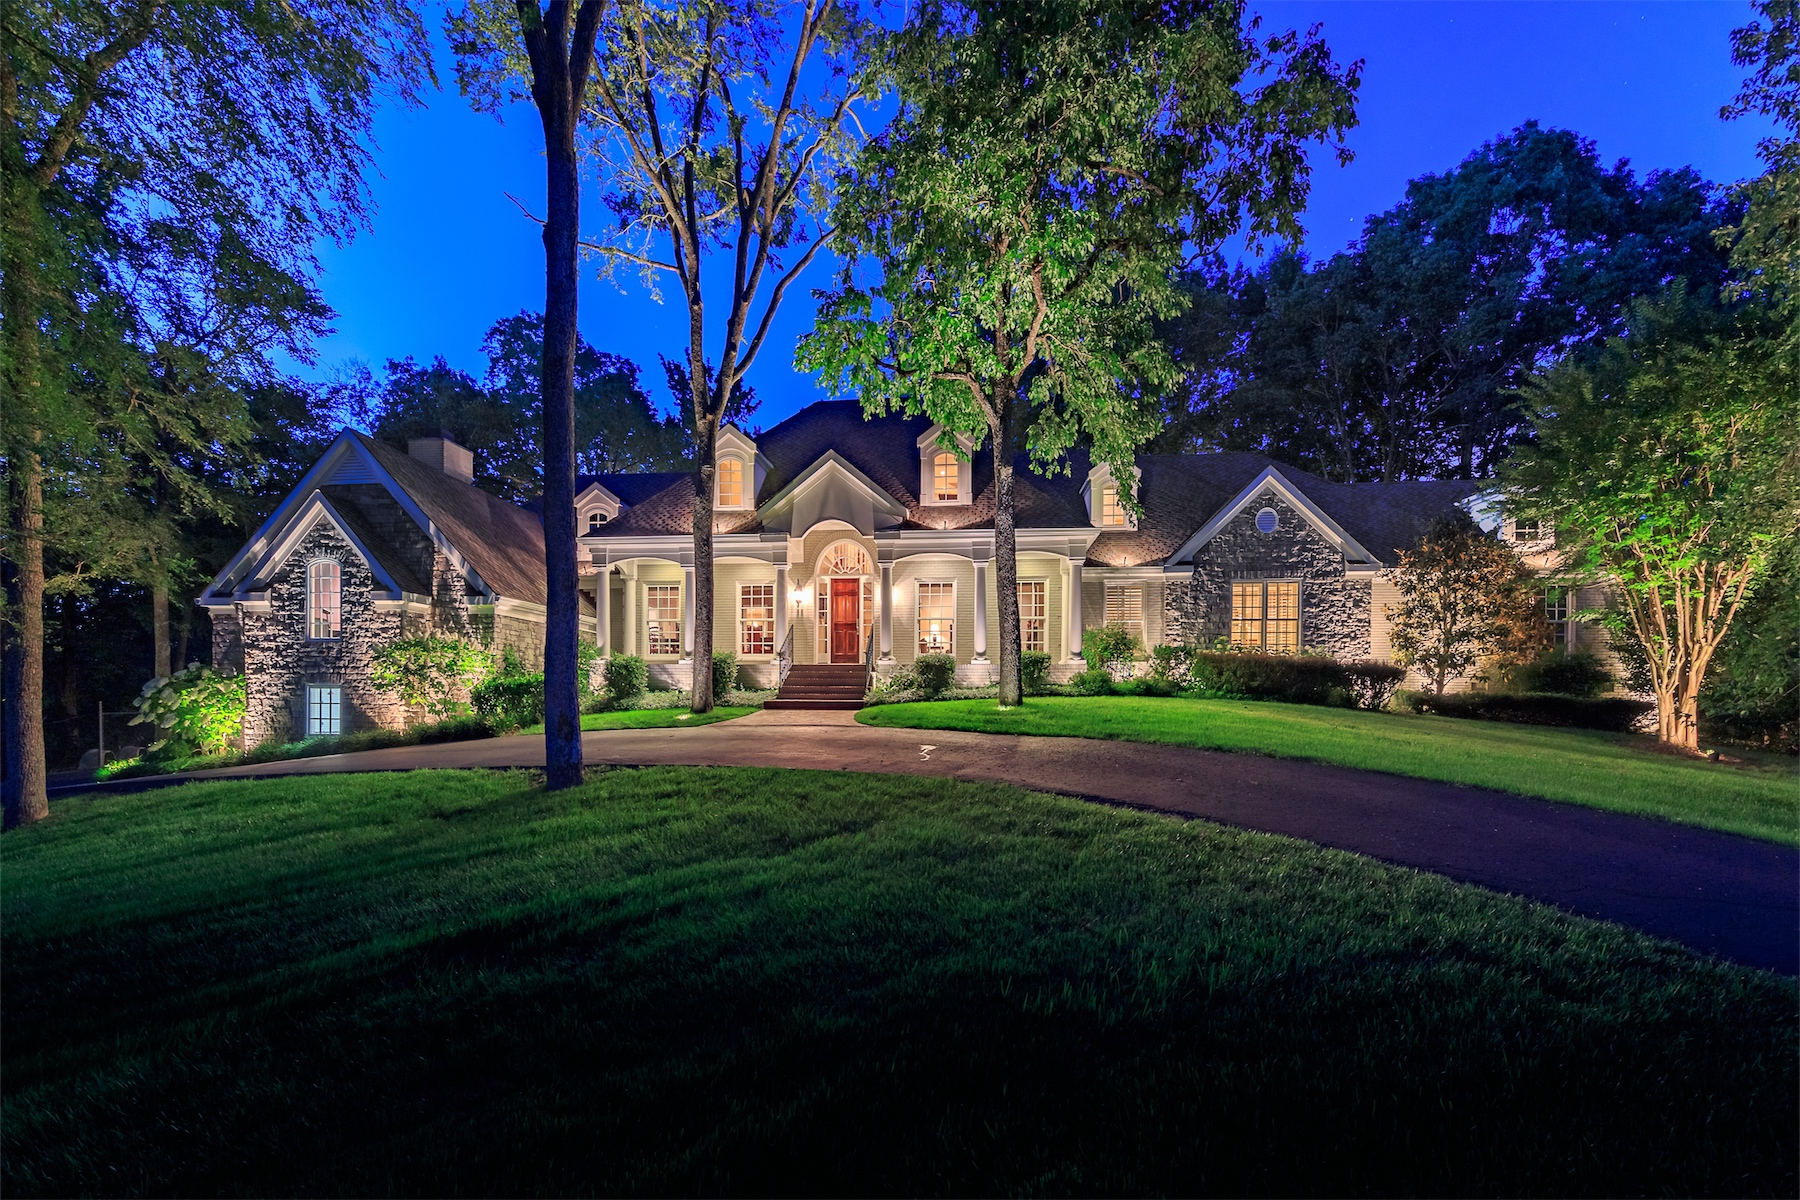 Land for Sale at Private Gated Estate on 41 Acres in Franklin 4508 Murfreesboro Road Franklin, Tennessee, 37067 South, United States